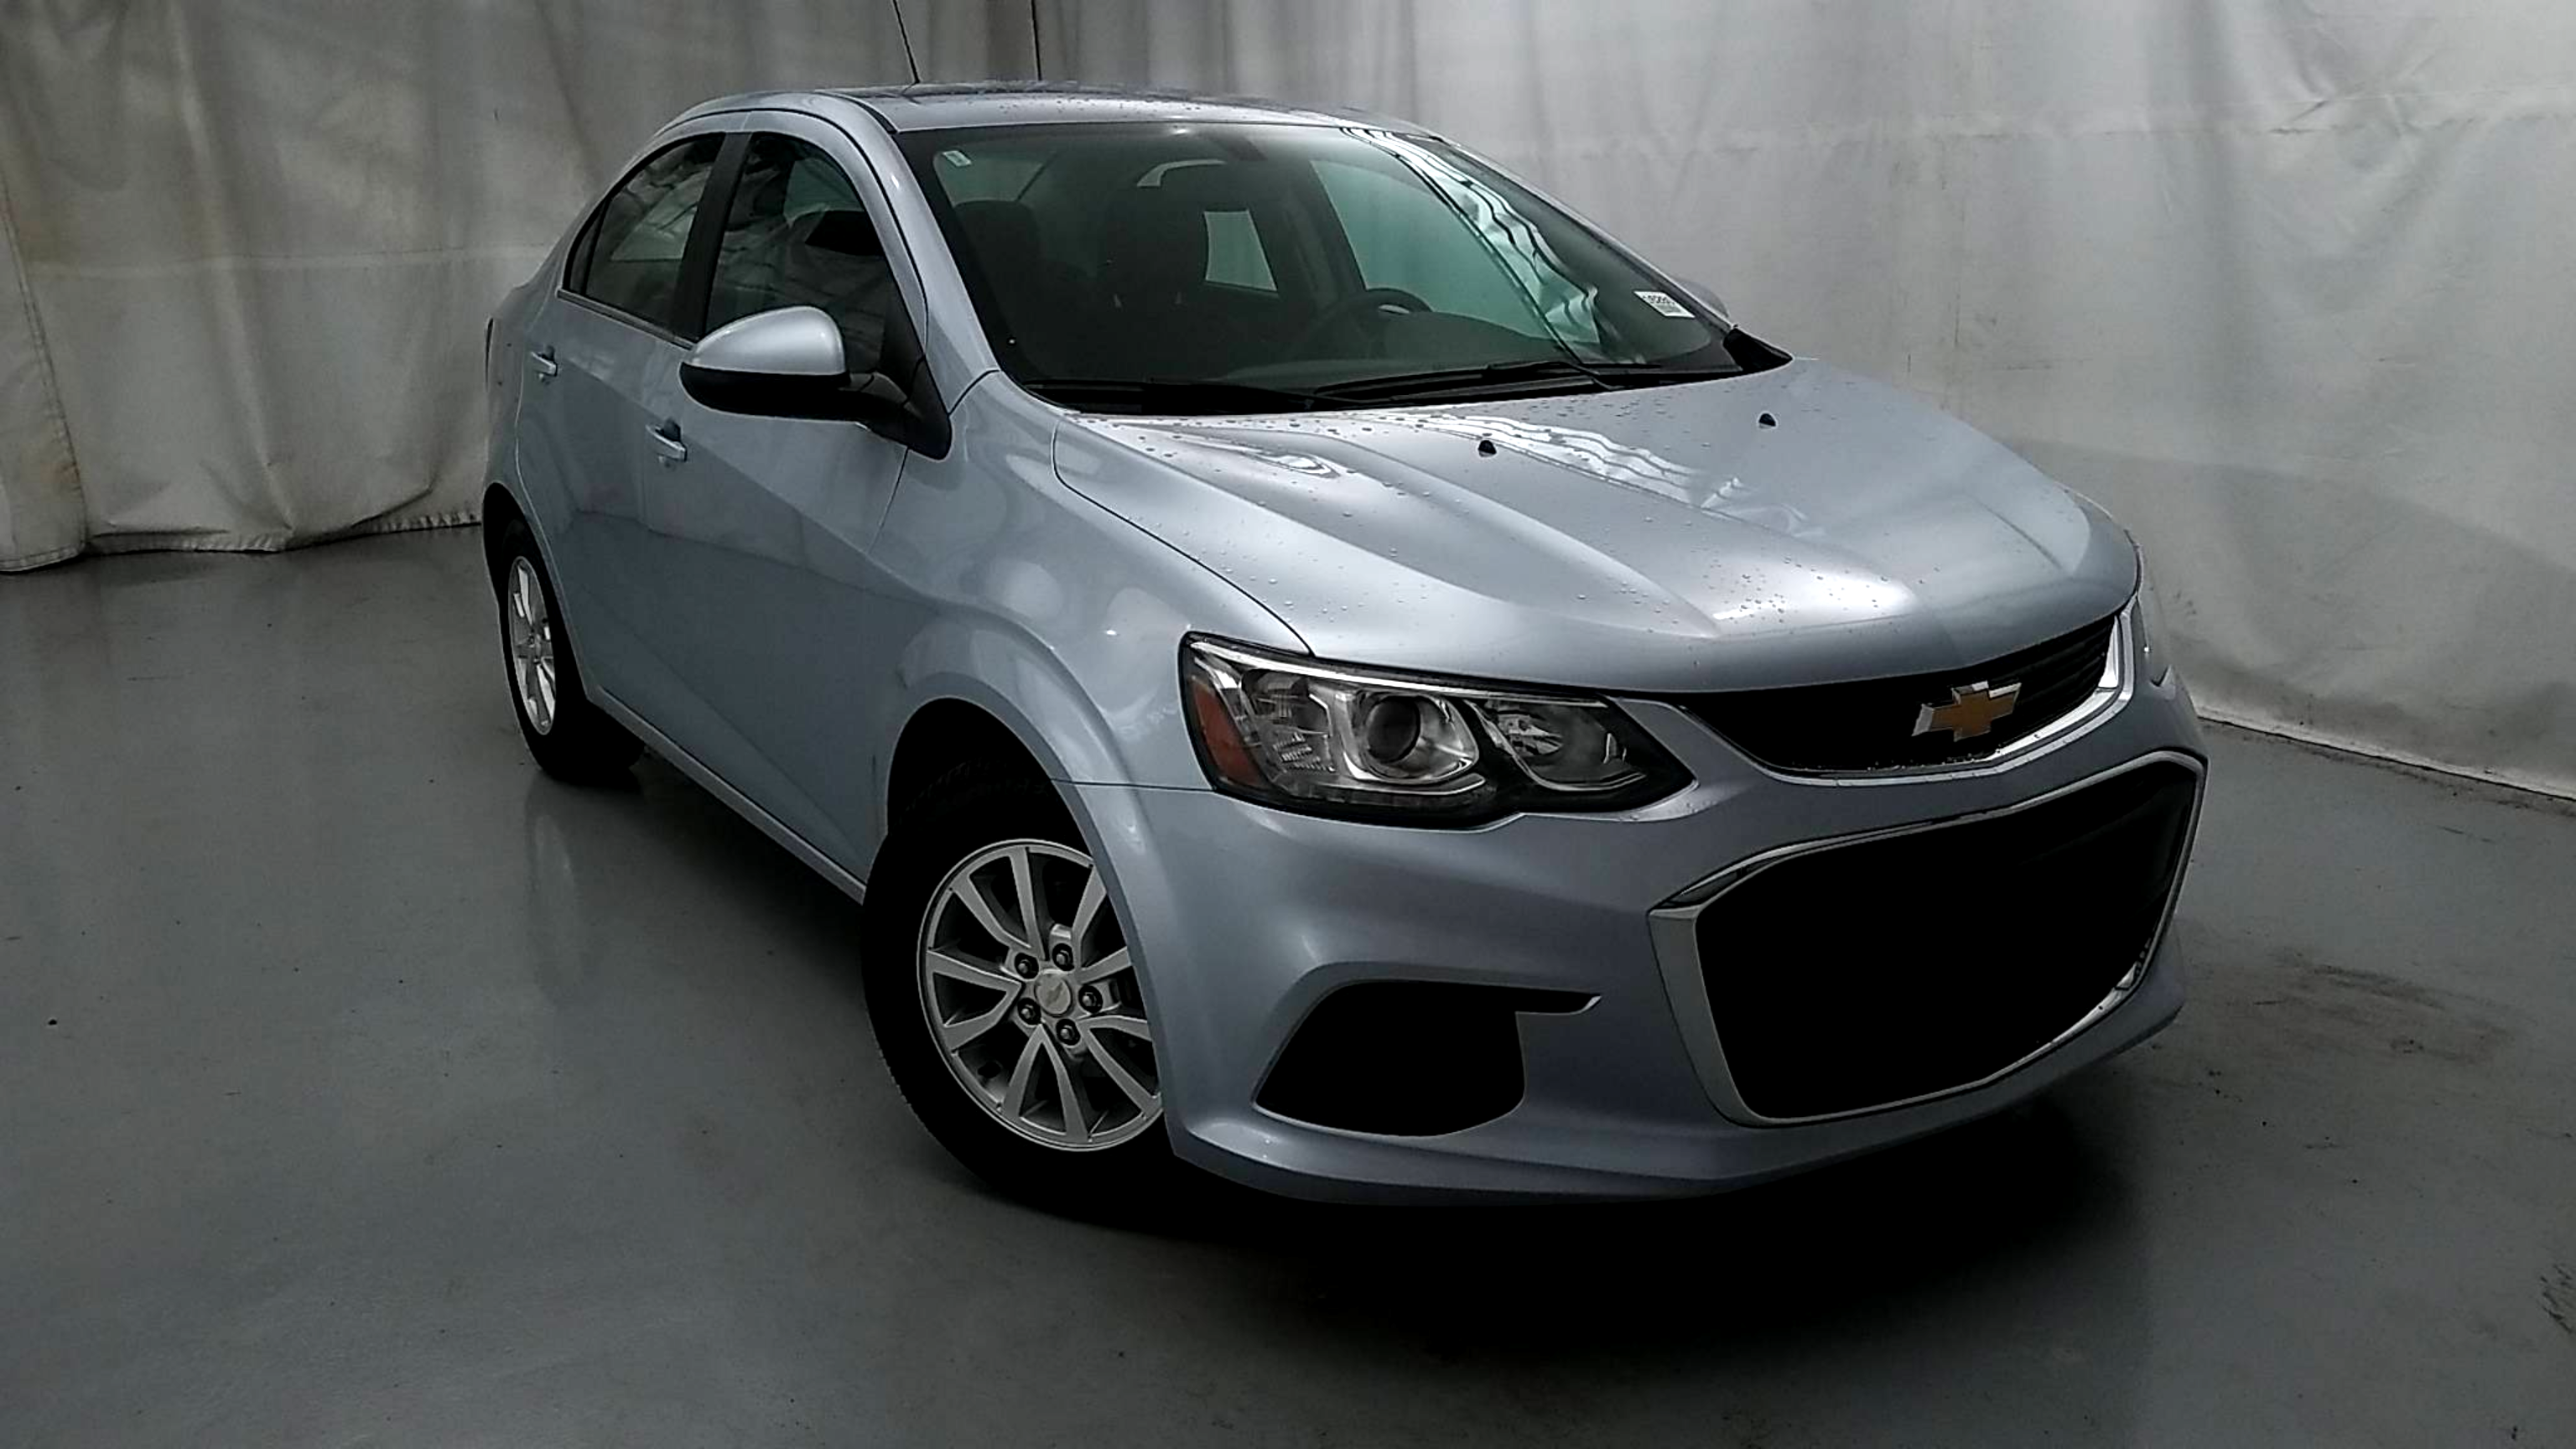 Chevrolet Sonic Owners Manual: Questions and Answers About Safety Belts